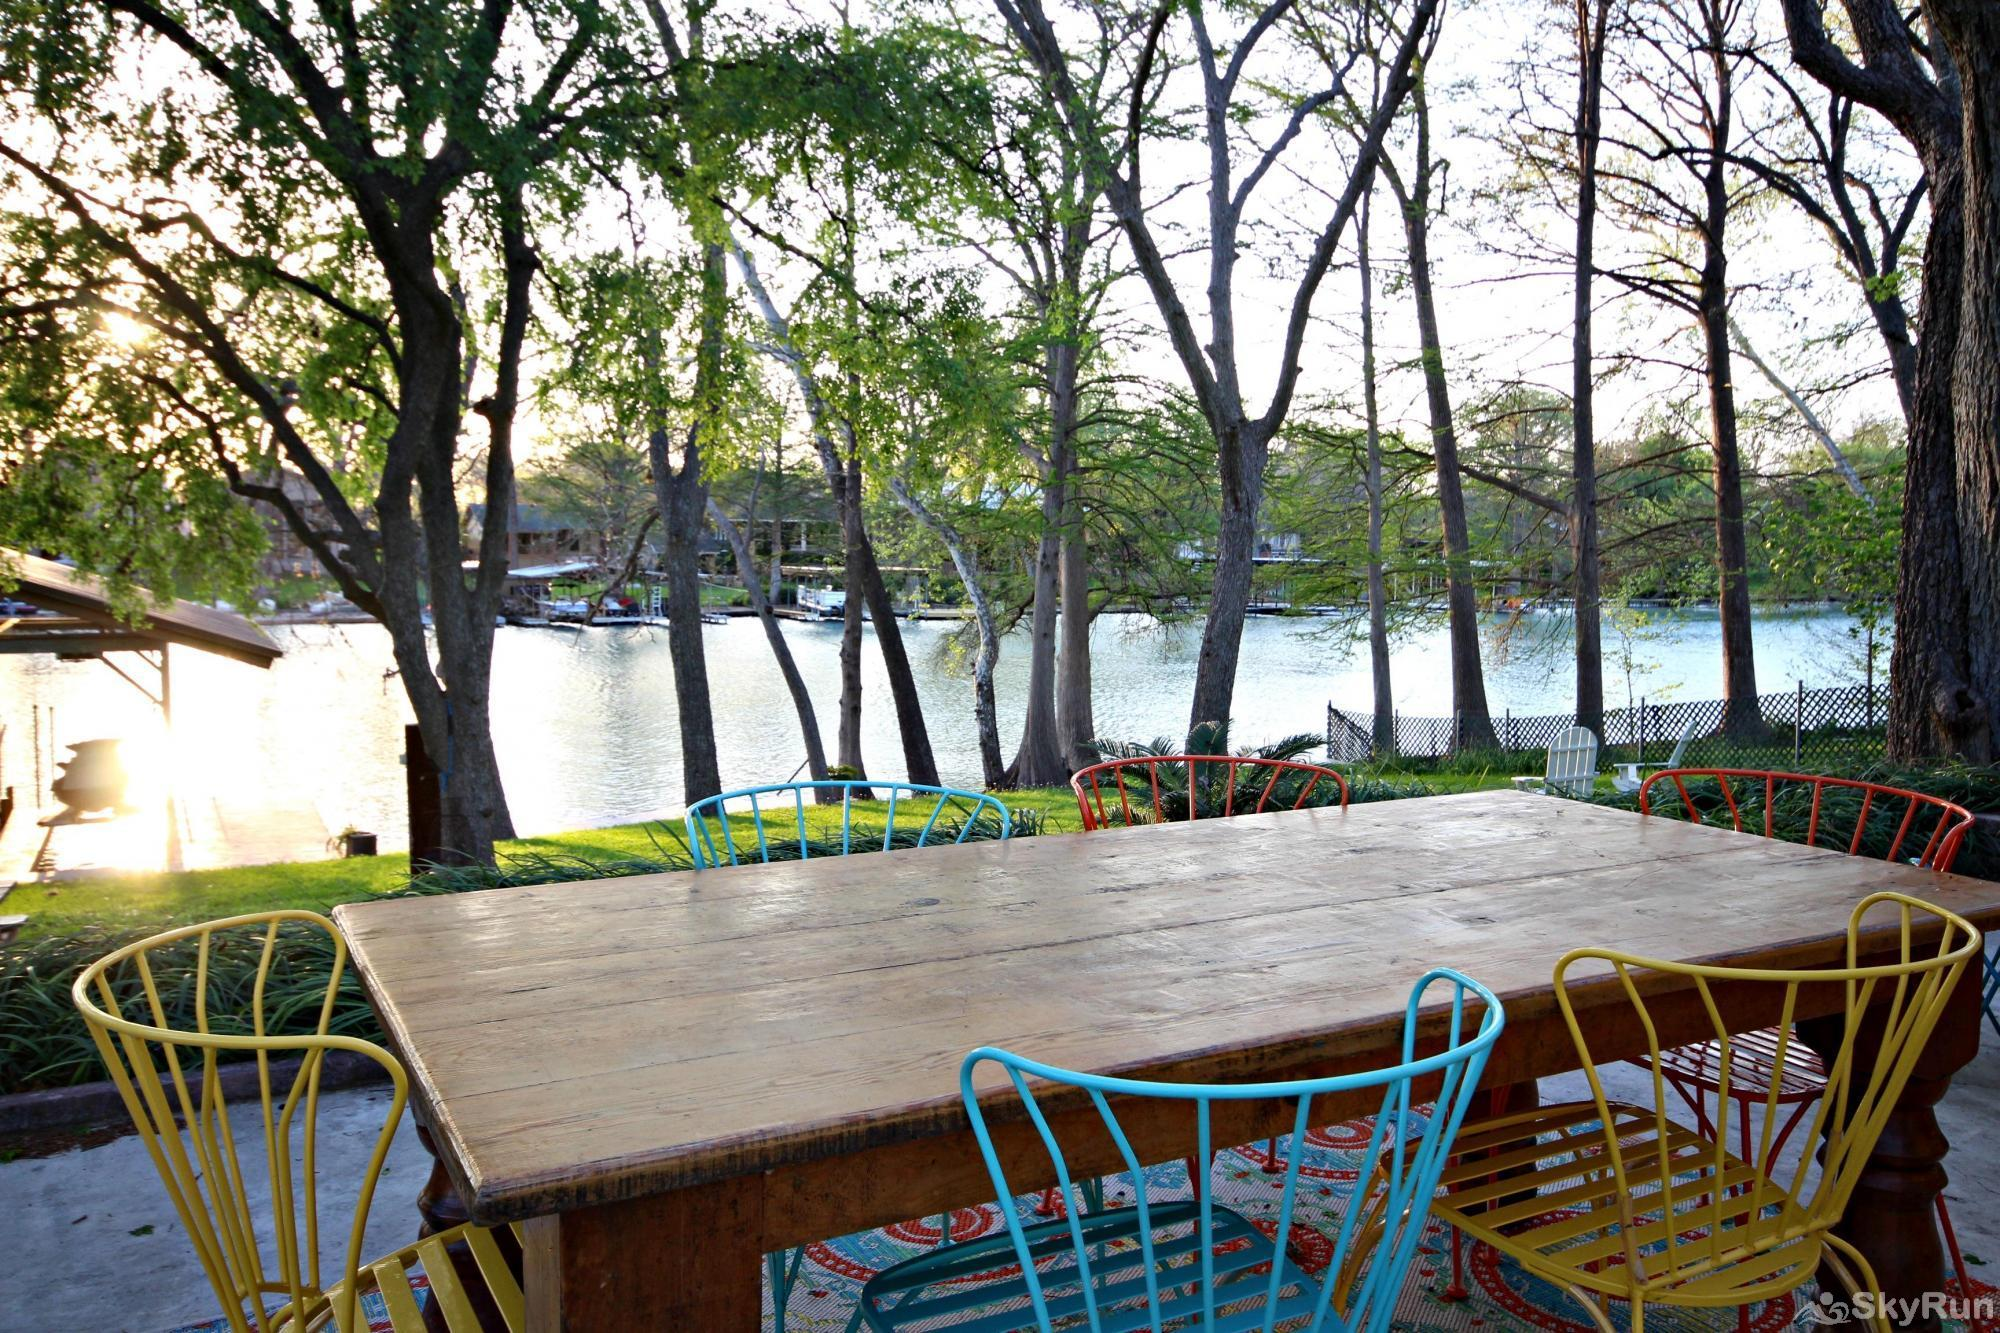 SUNSET LAKE HAUS Welcome to Lake Dunlap in New Braunfels